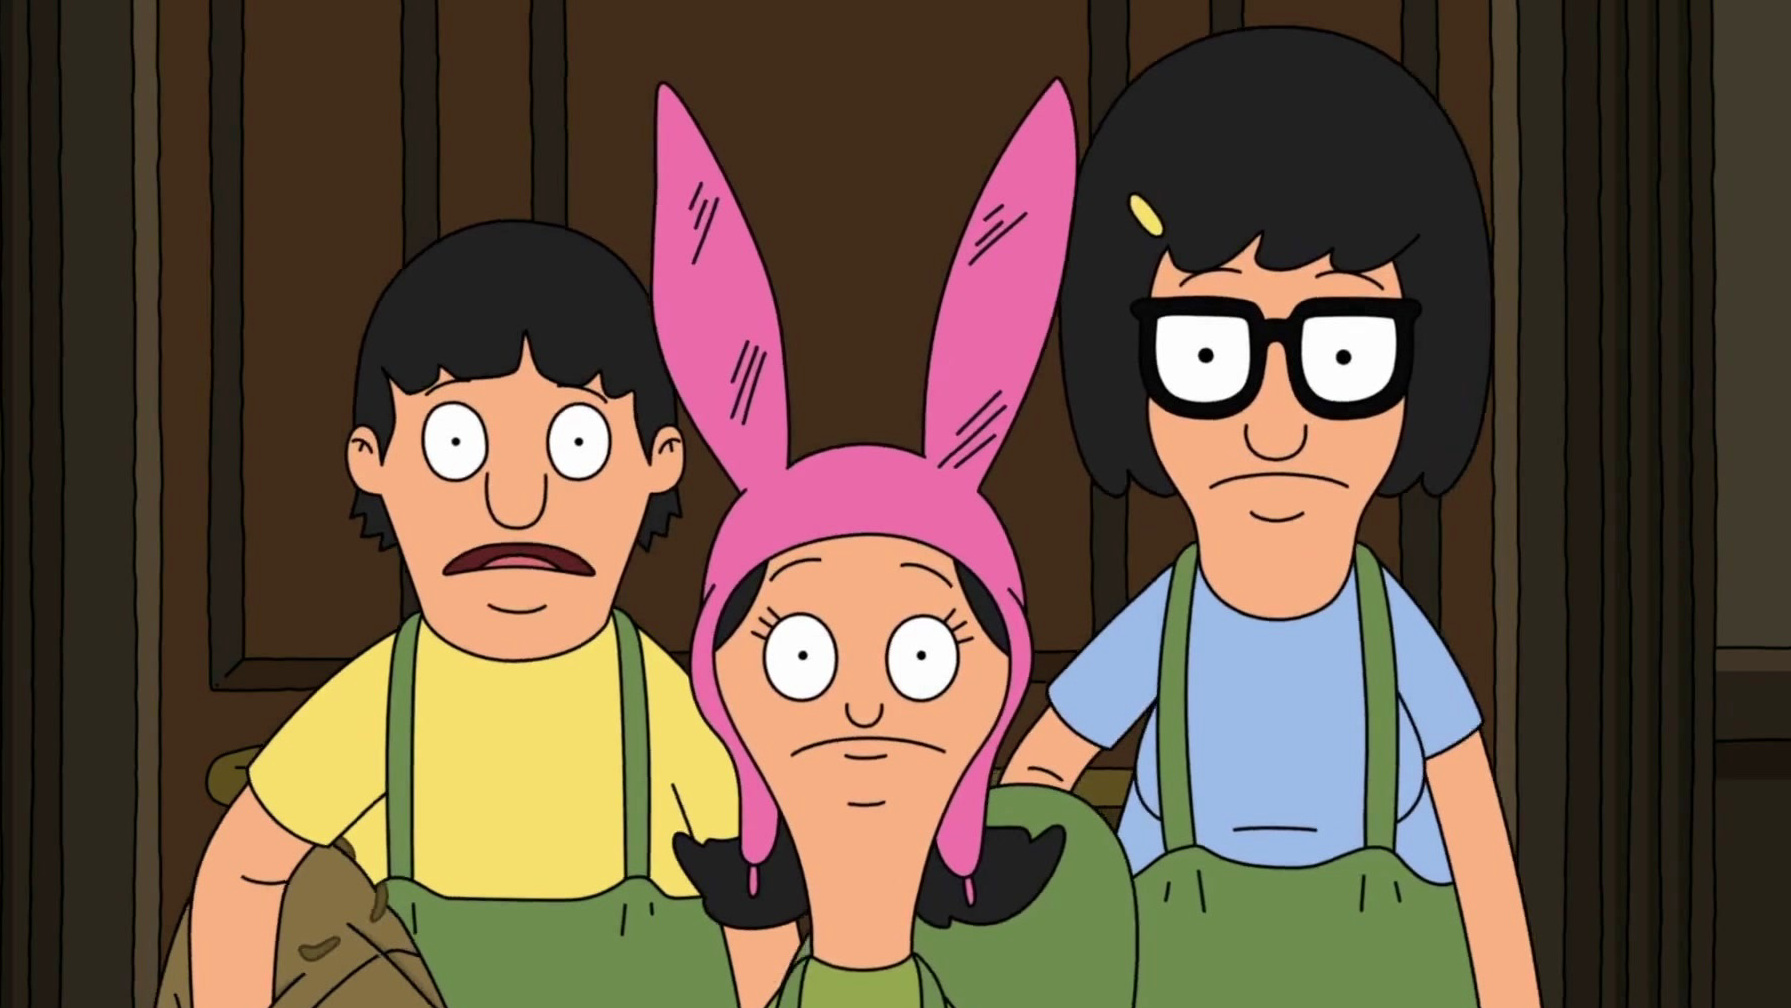 Bob's Burgers: The Kids Make A Spooky Delivery